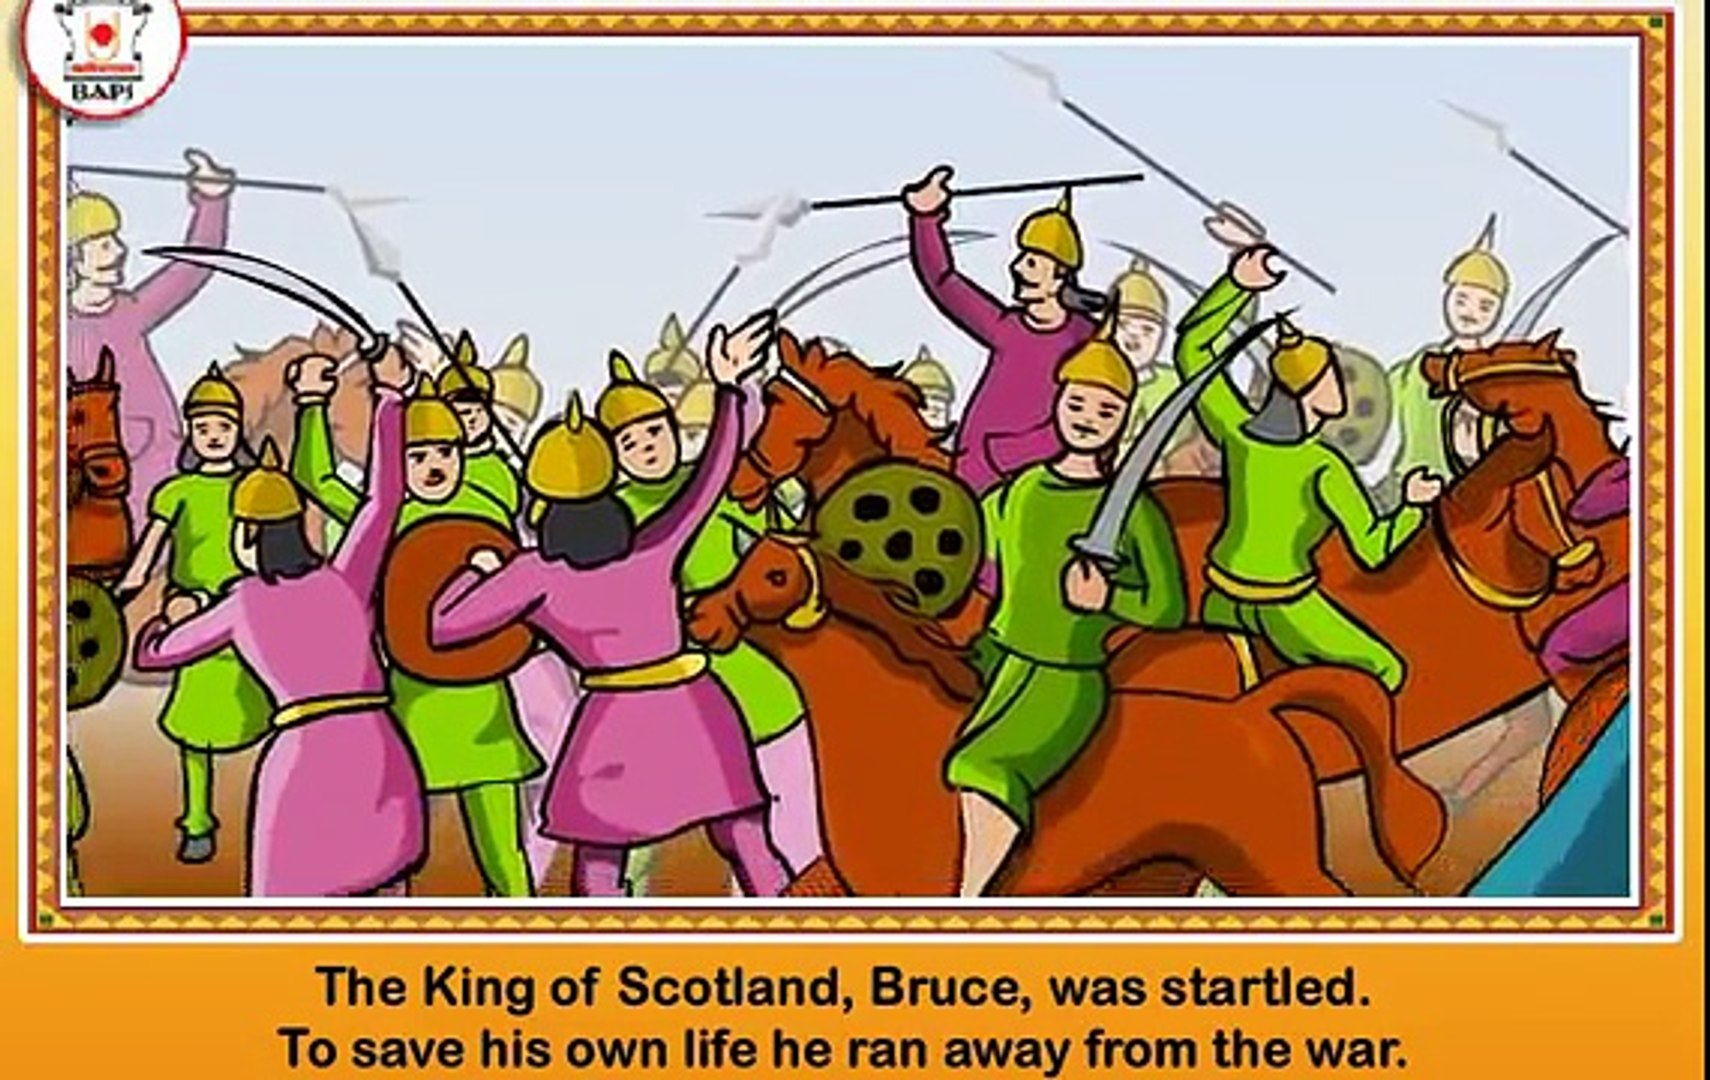 The King of Scotland ¦ kids stories ¦ moral stories ¦ Bedtime Stories ¦ Fairy Tales